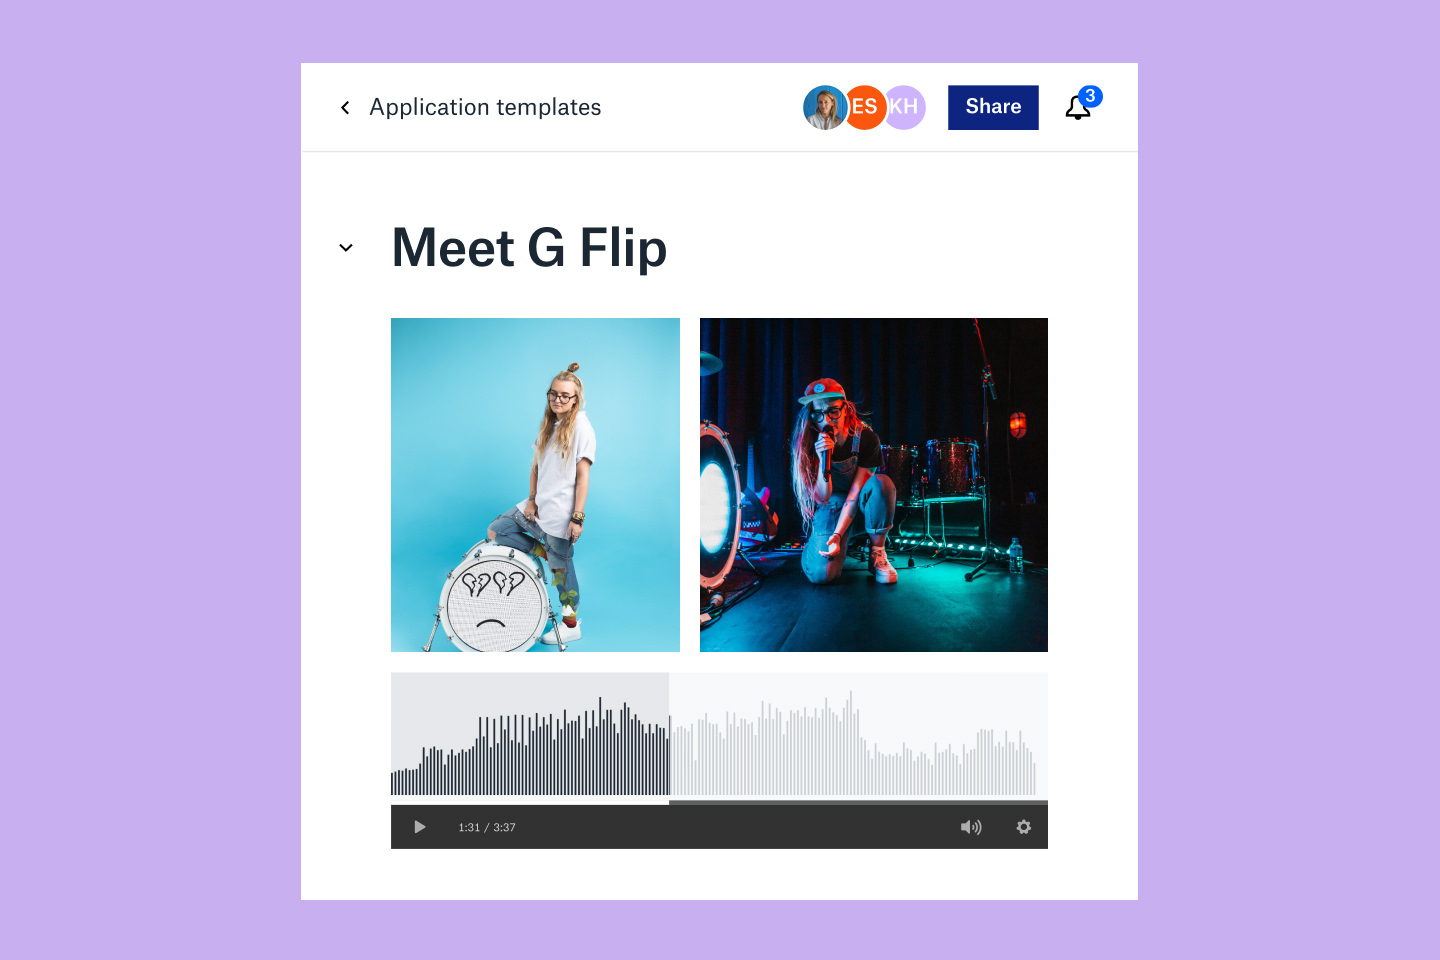 user interface of Dropbox showing musician photos